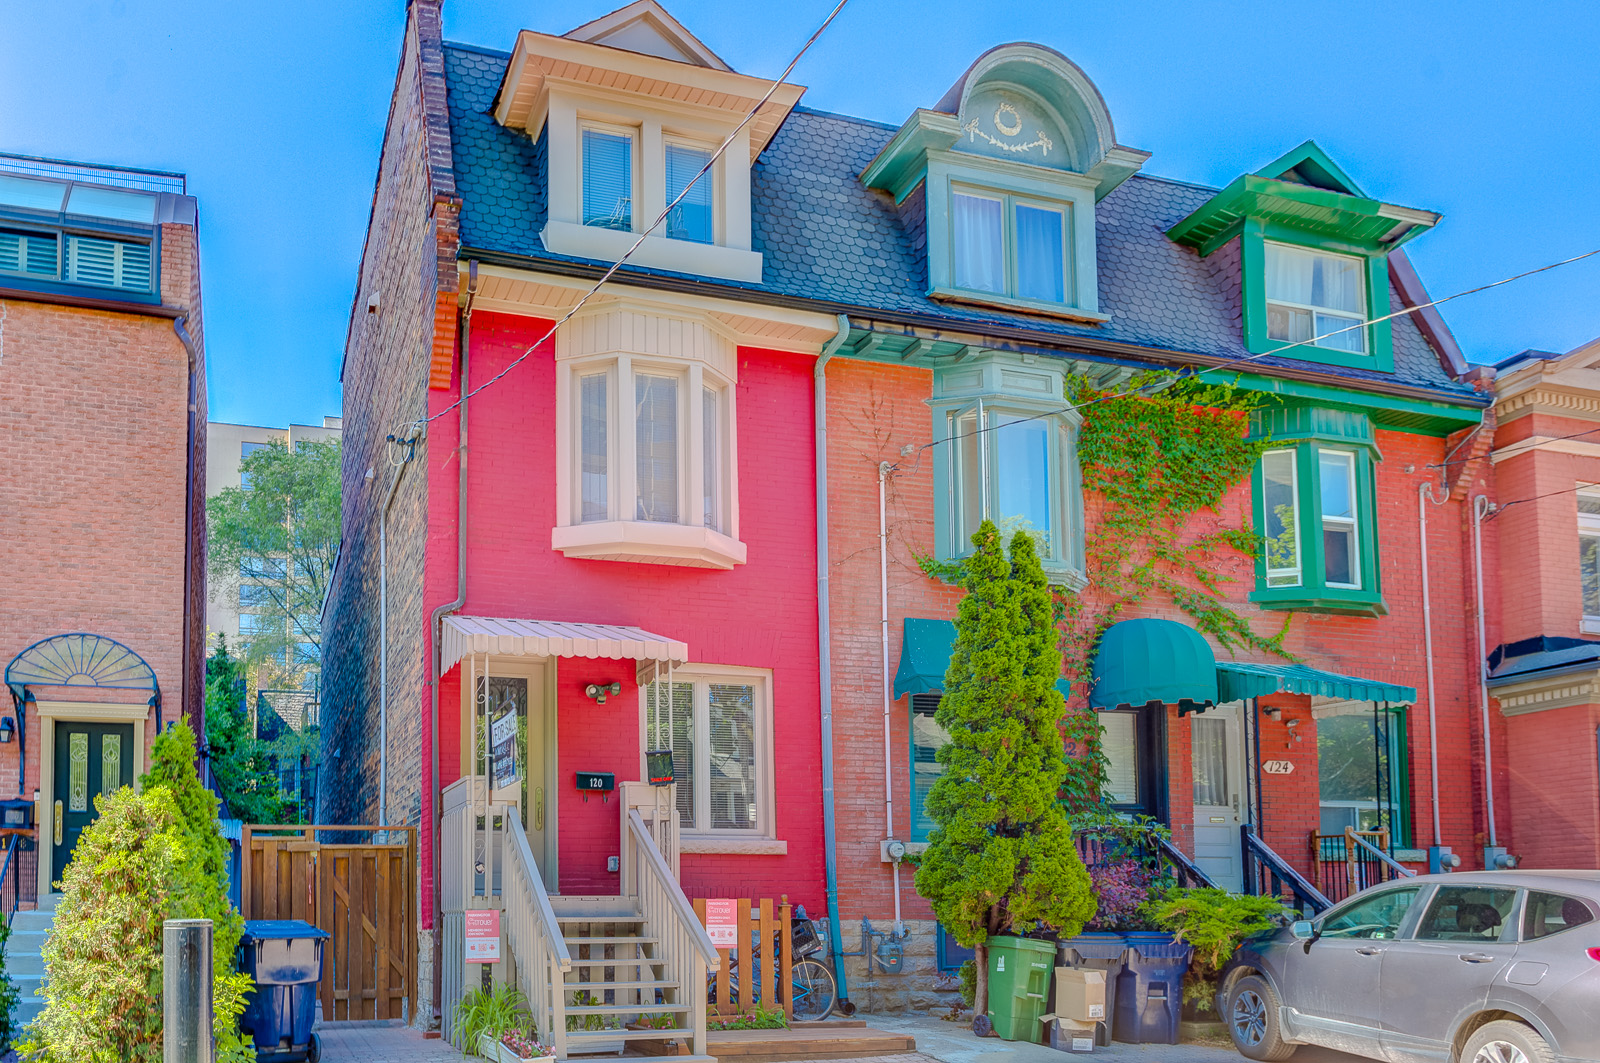 Colourful houses in Church-Yonge Corridor, which is experiencing low price appreciation.